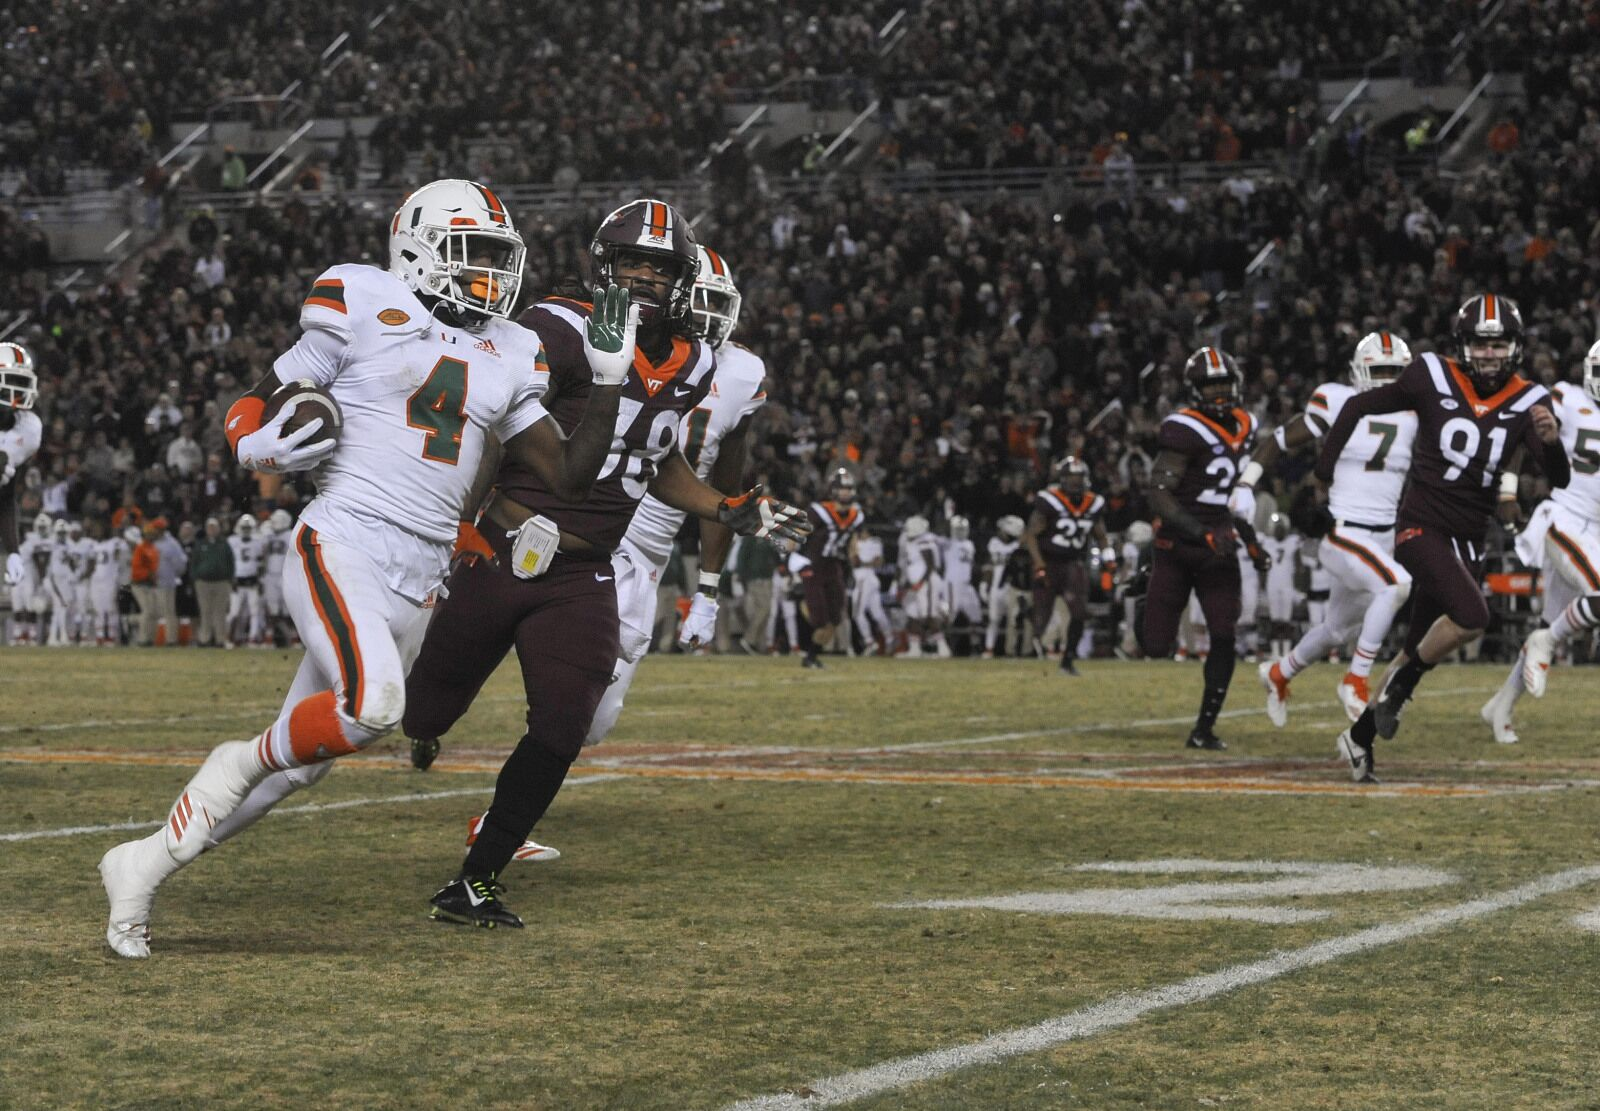 Miami football coaching staff believes WR success is coming